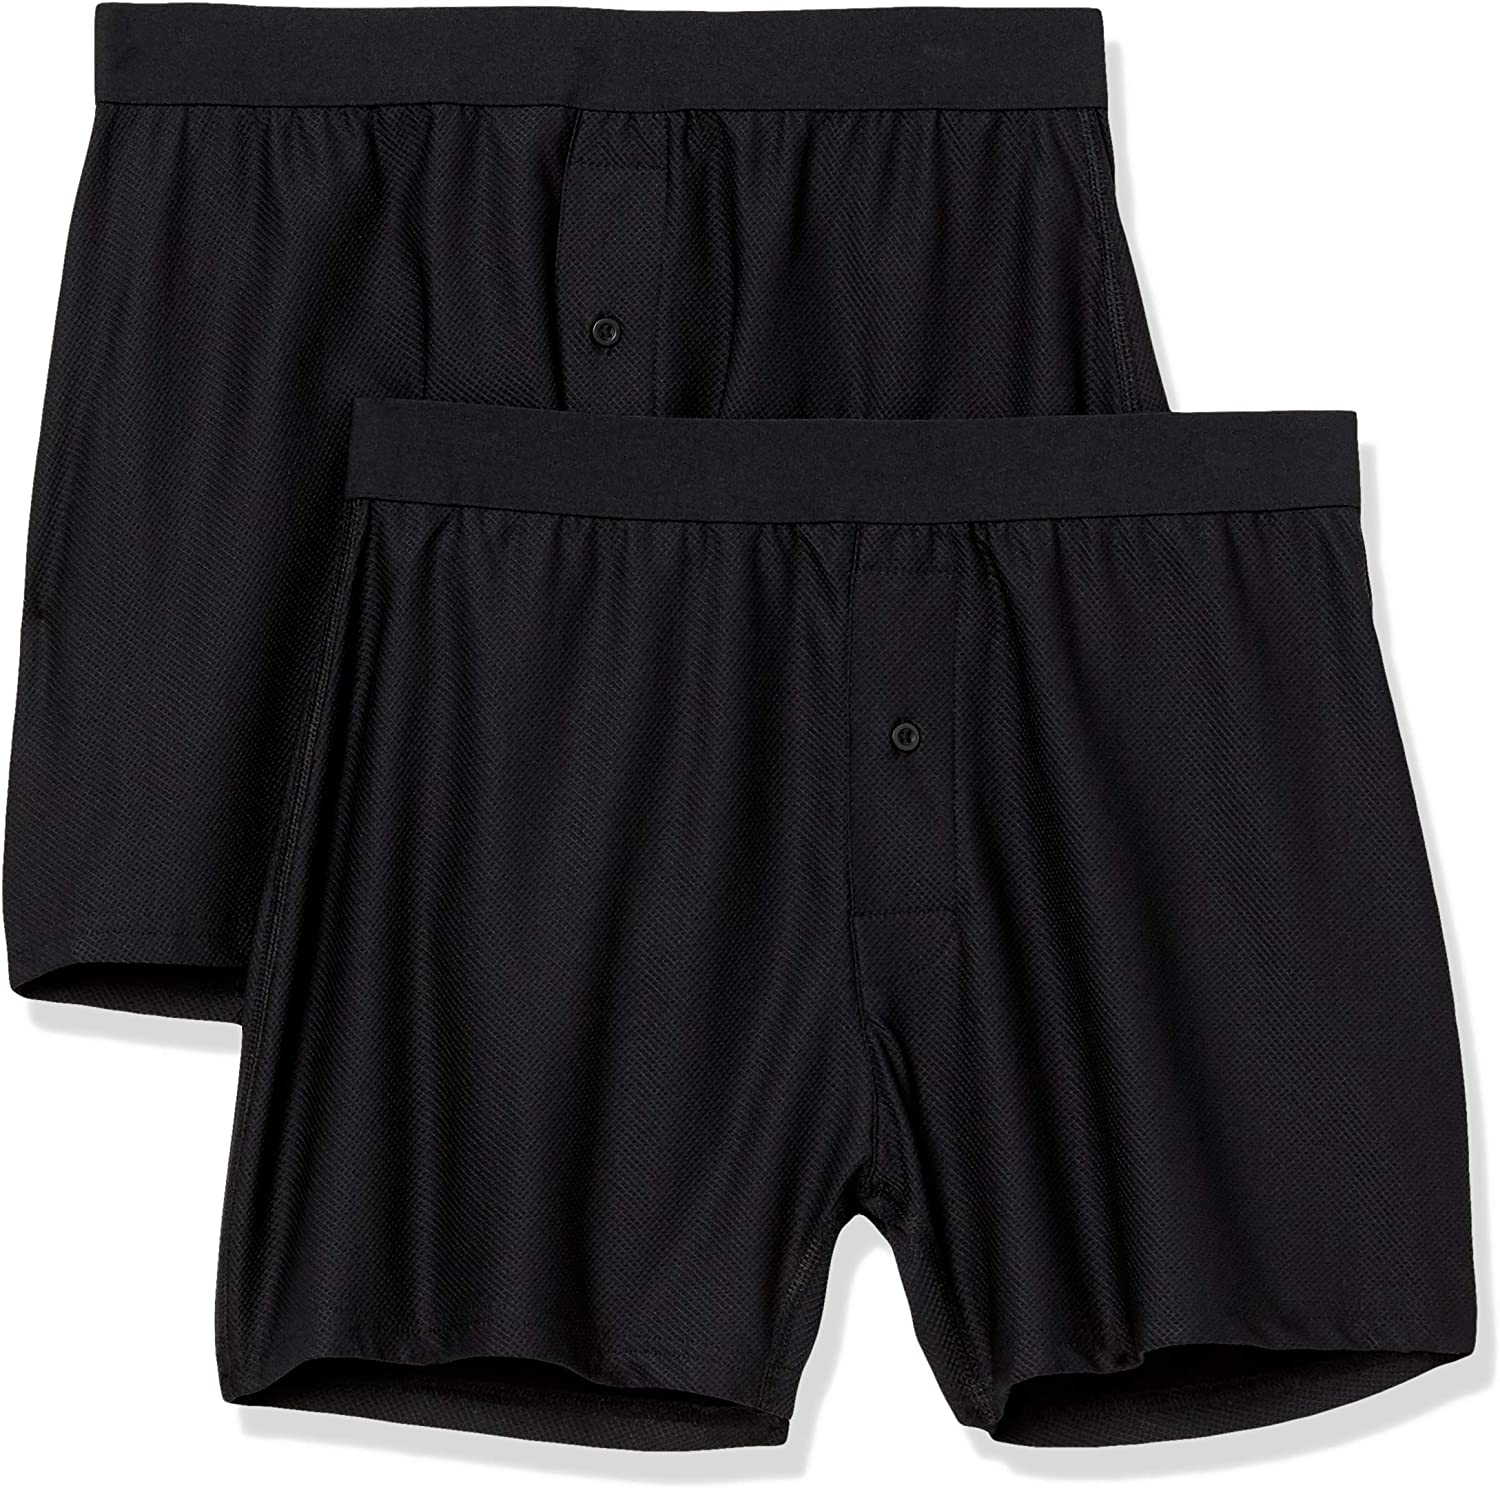 Amazon Essentials Men's 2-Pack Breathable Quick-Dry On-The-go Boxer